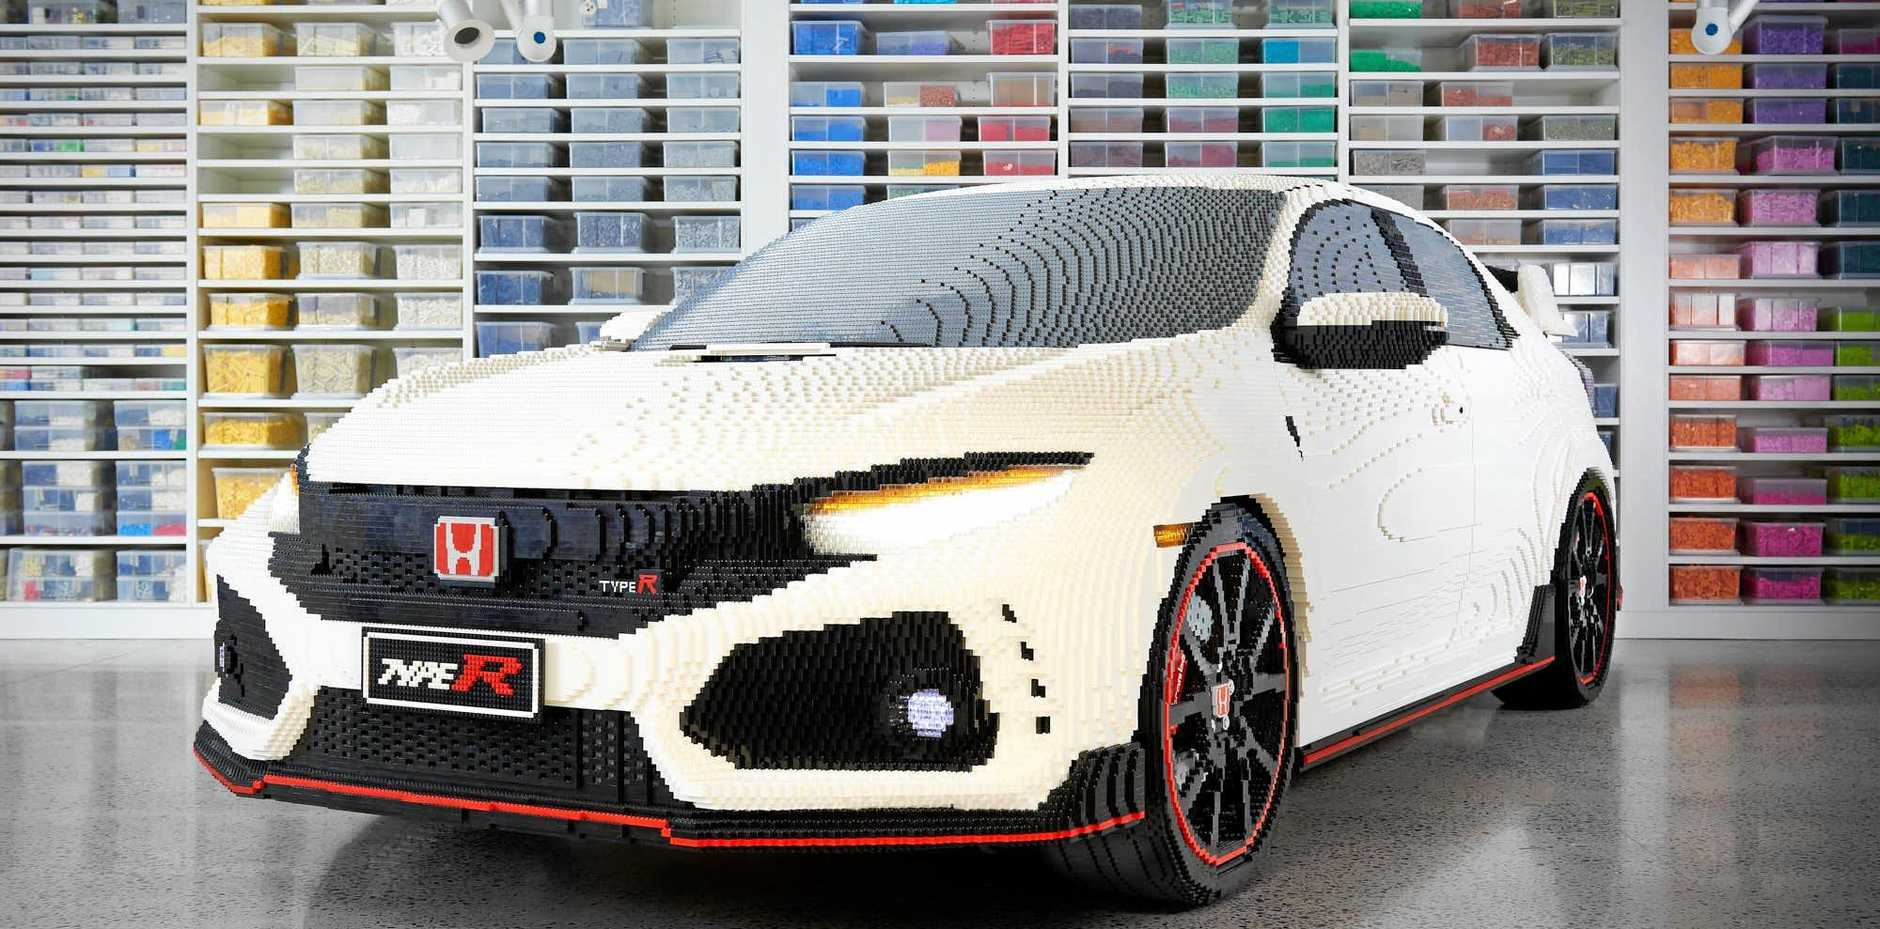 The Honda Civic Type R has been transformed into a life-size Lego model.